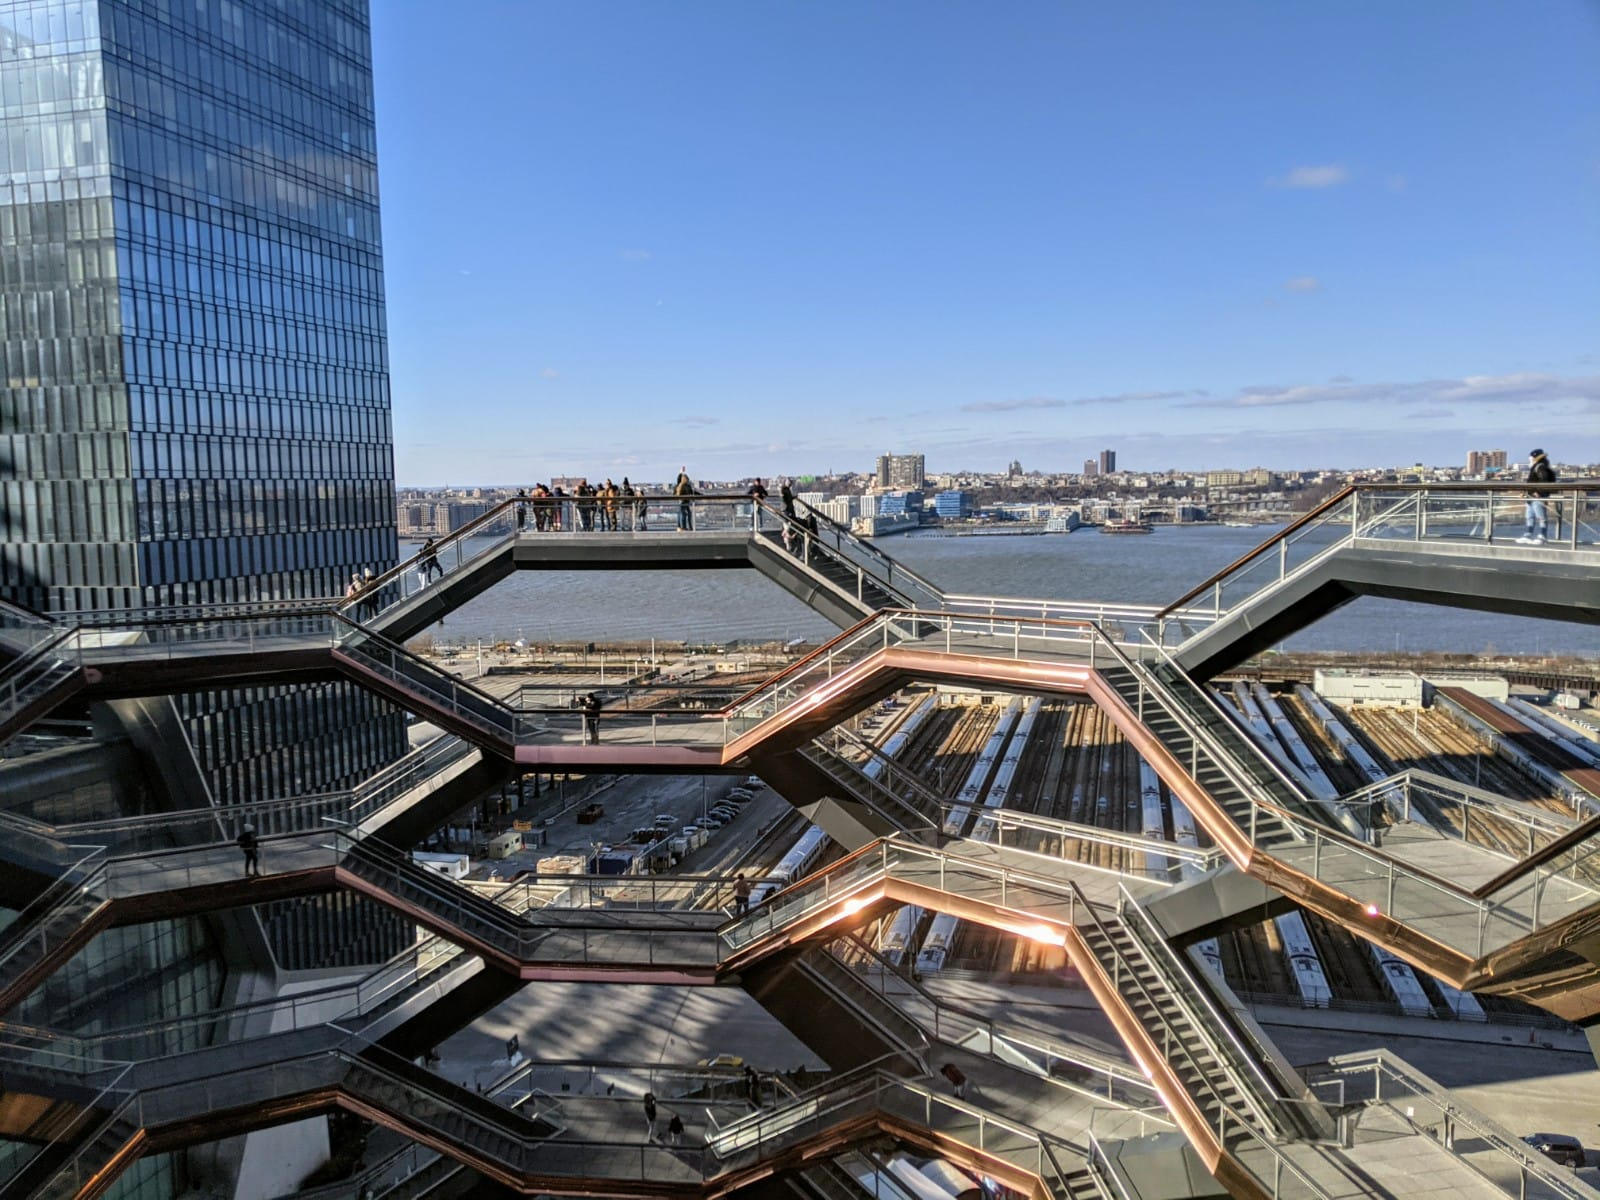 Vessel at Hudson Yards in new york city